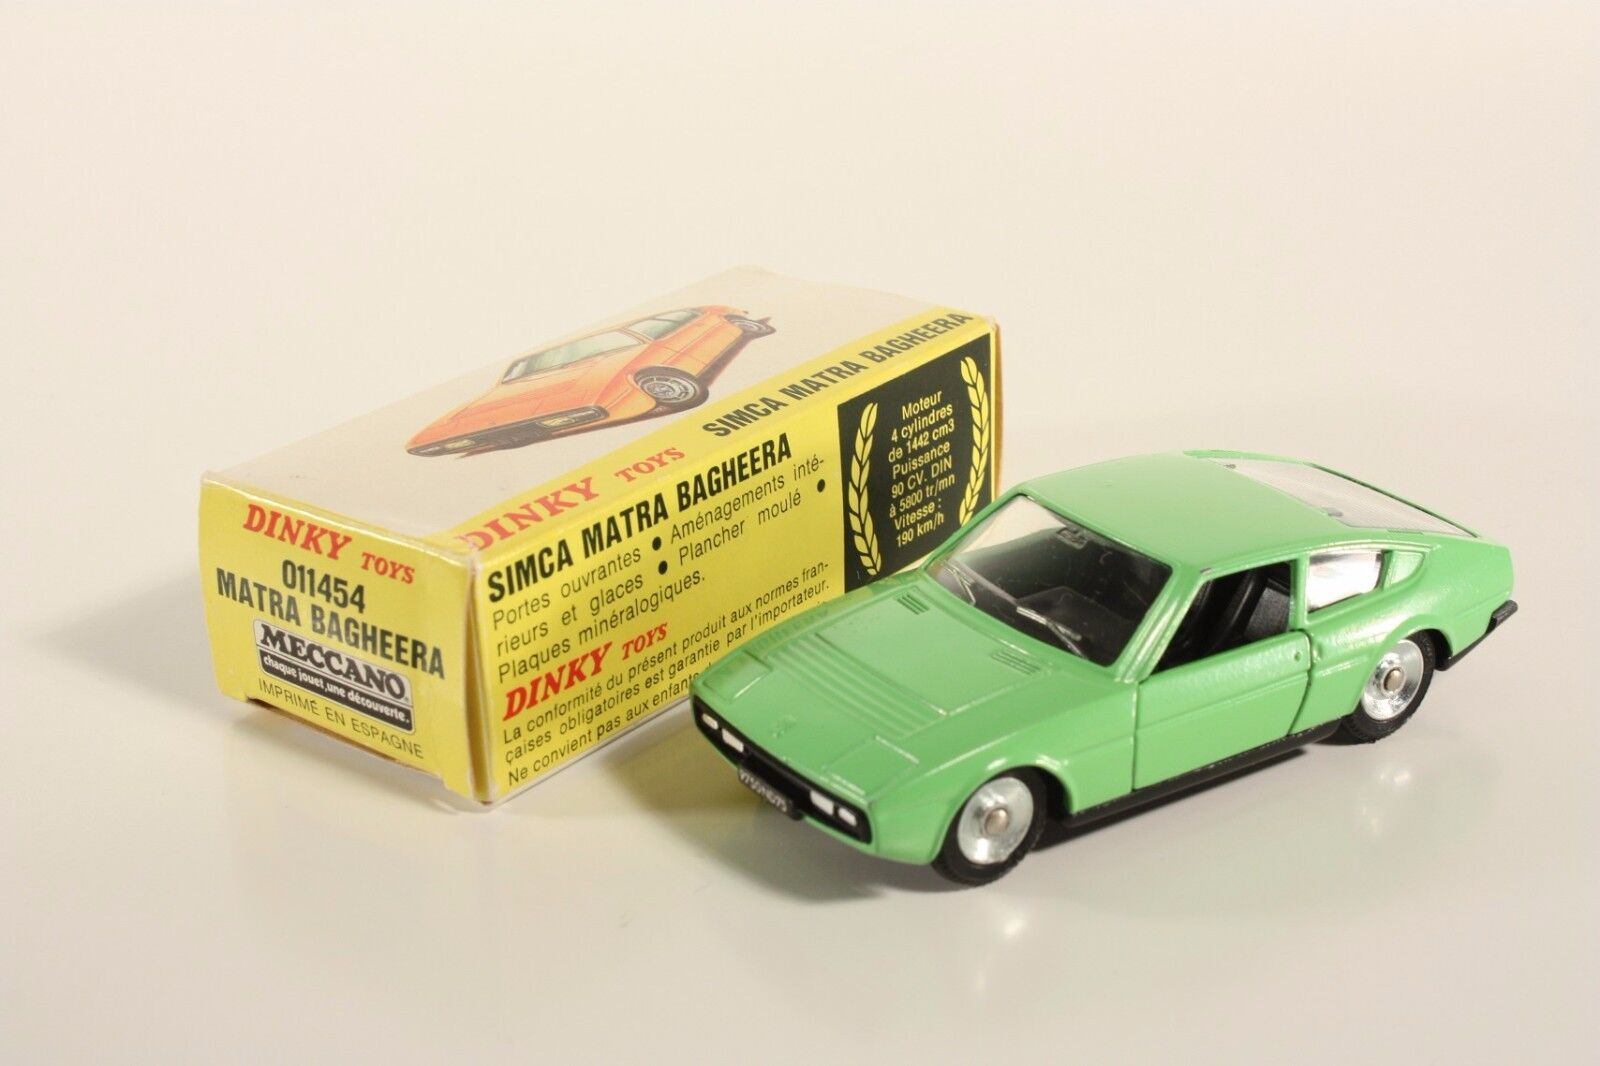 DINKY TOYS 011454, Matra sacheera, Comme neuf Dans Box   ab2076  magasin en ligne